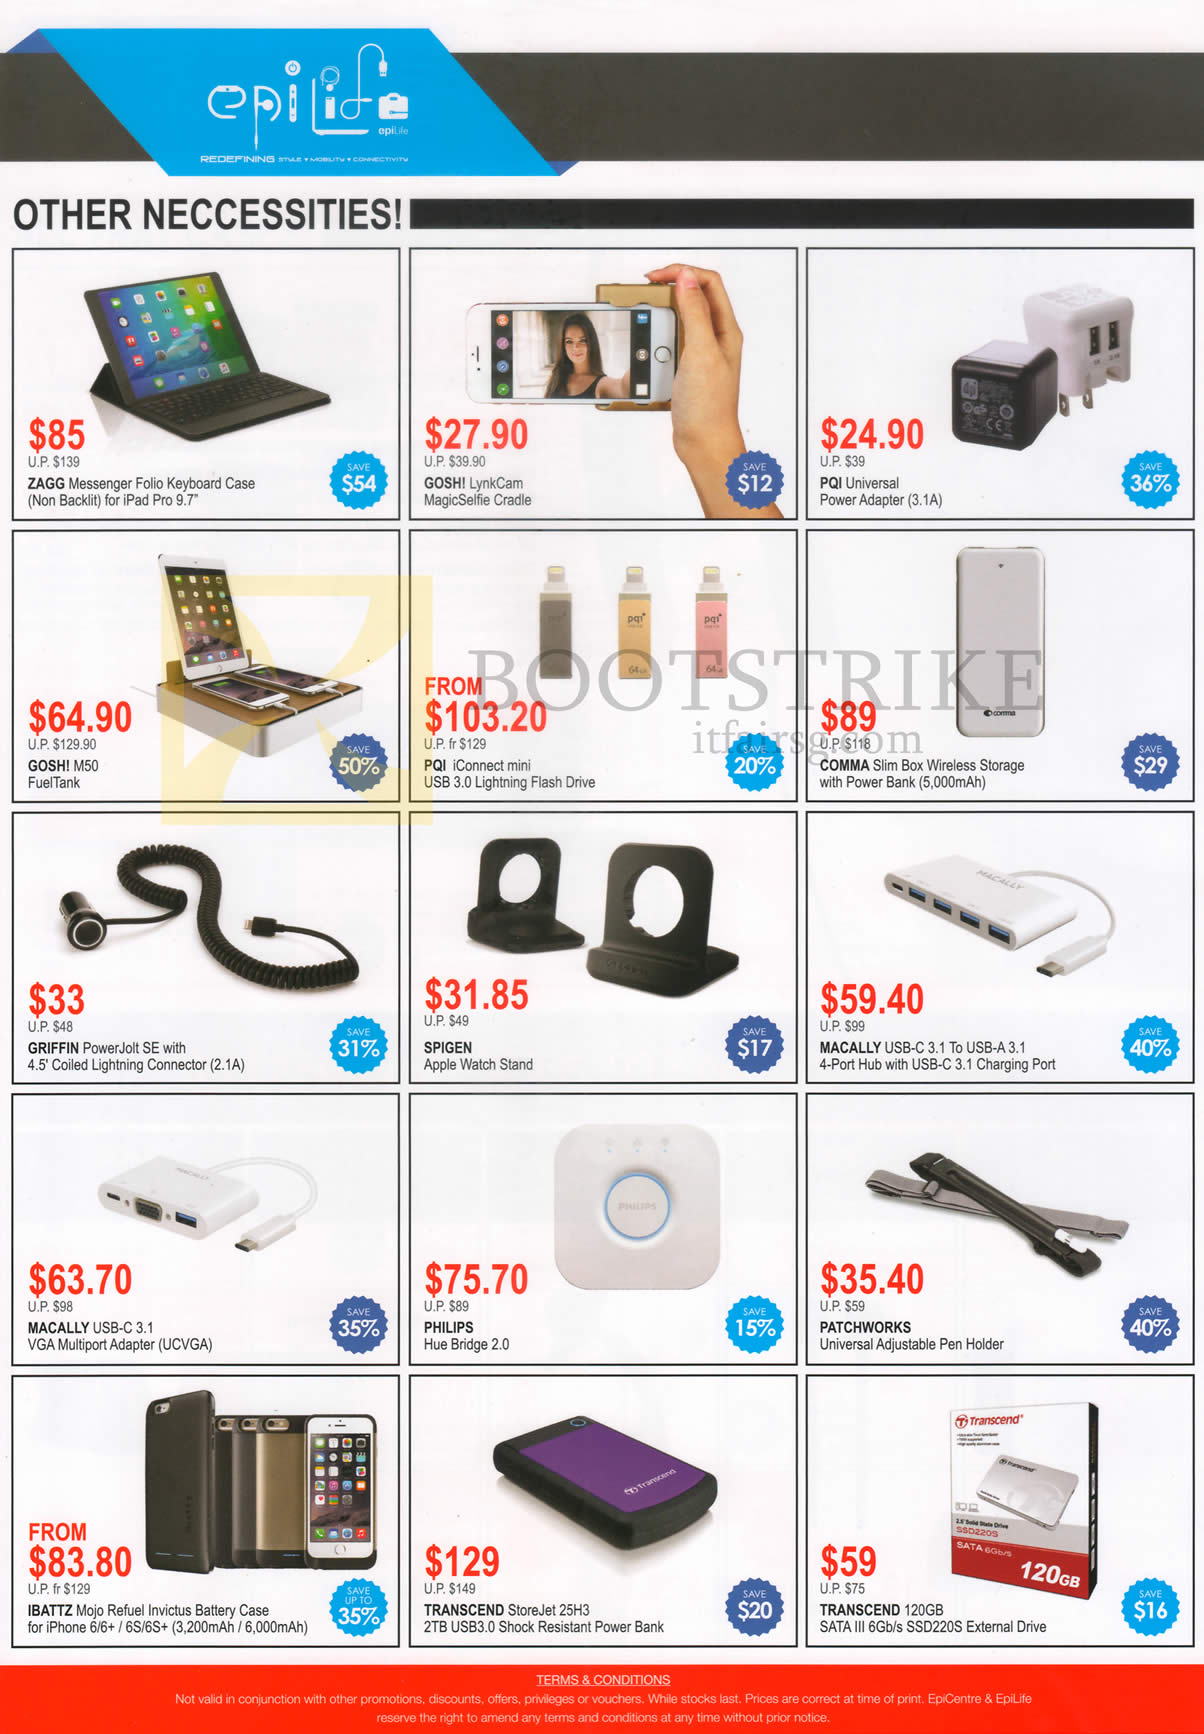 COMEX 2016 price list image brochure of EpiCentre Epilife Accessories Cases, Power Adapters, Storages, Lightning Flassh Drives, Watch Stand, Charging Port, Hub Bridge, Pen Holder, Battery Case, PowerBank